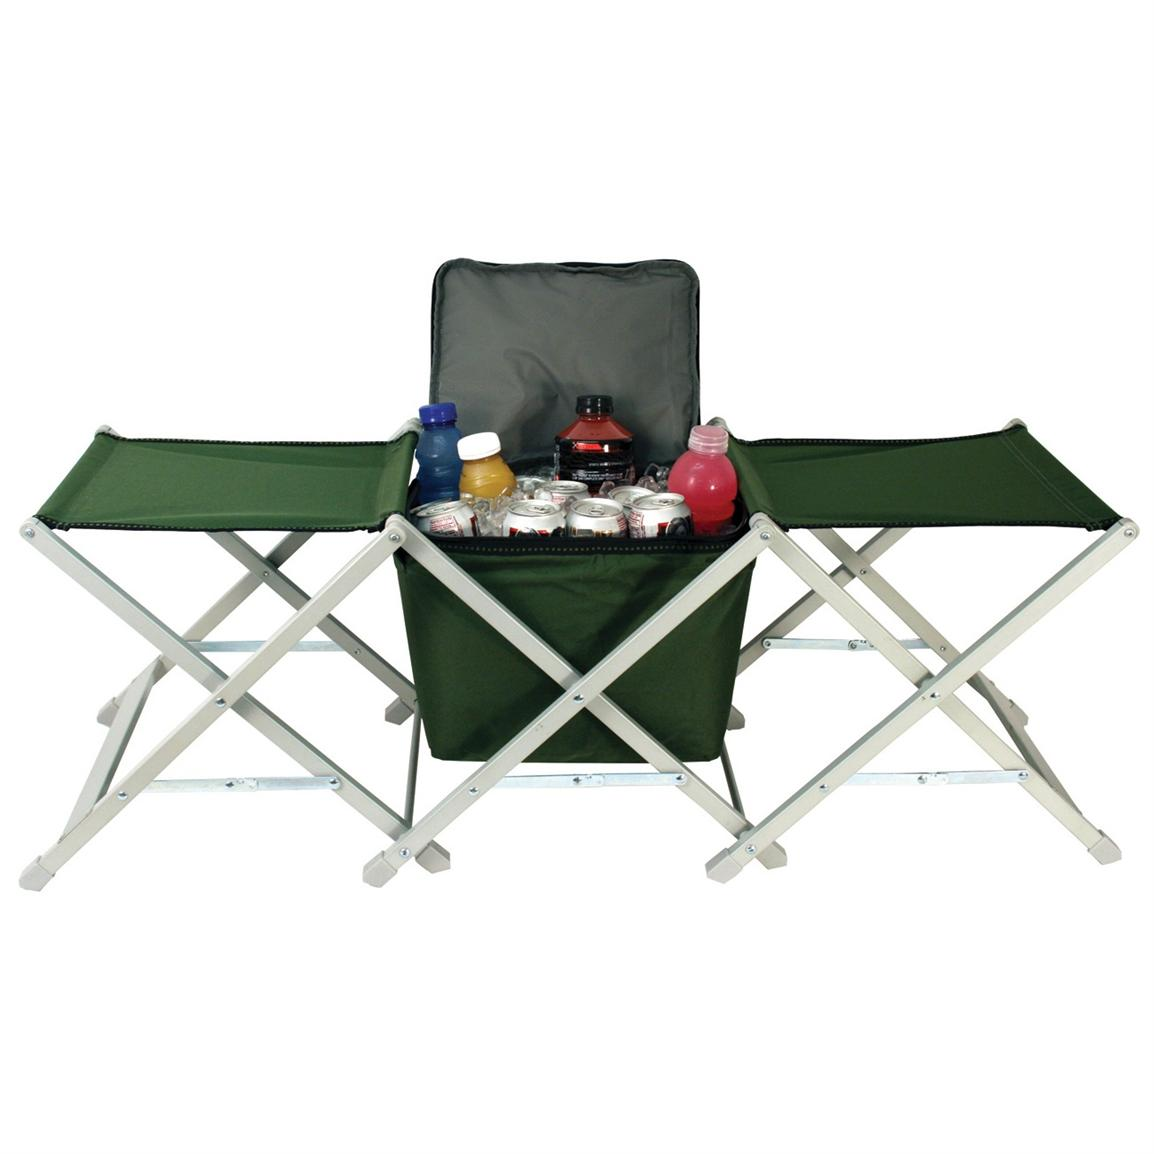 Texsport® Camp Stools with Cooler